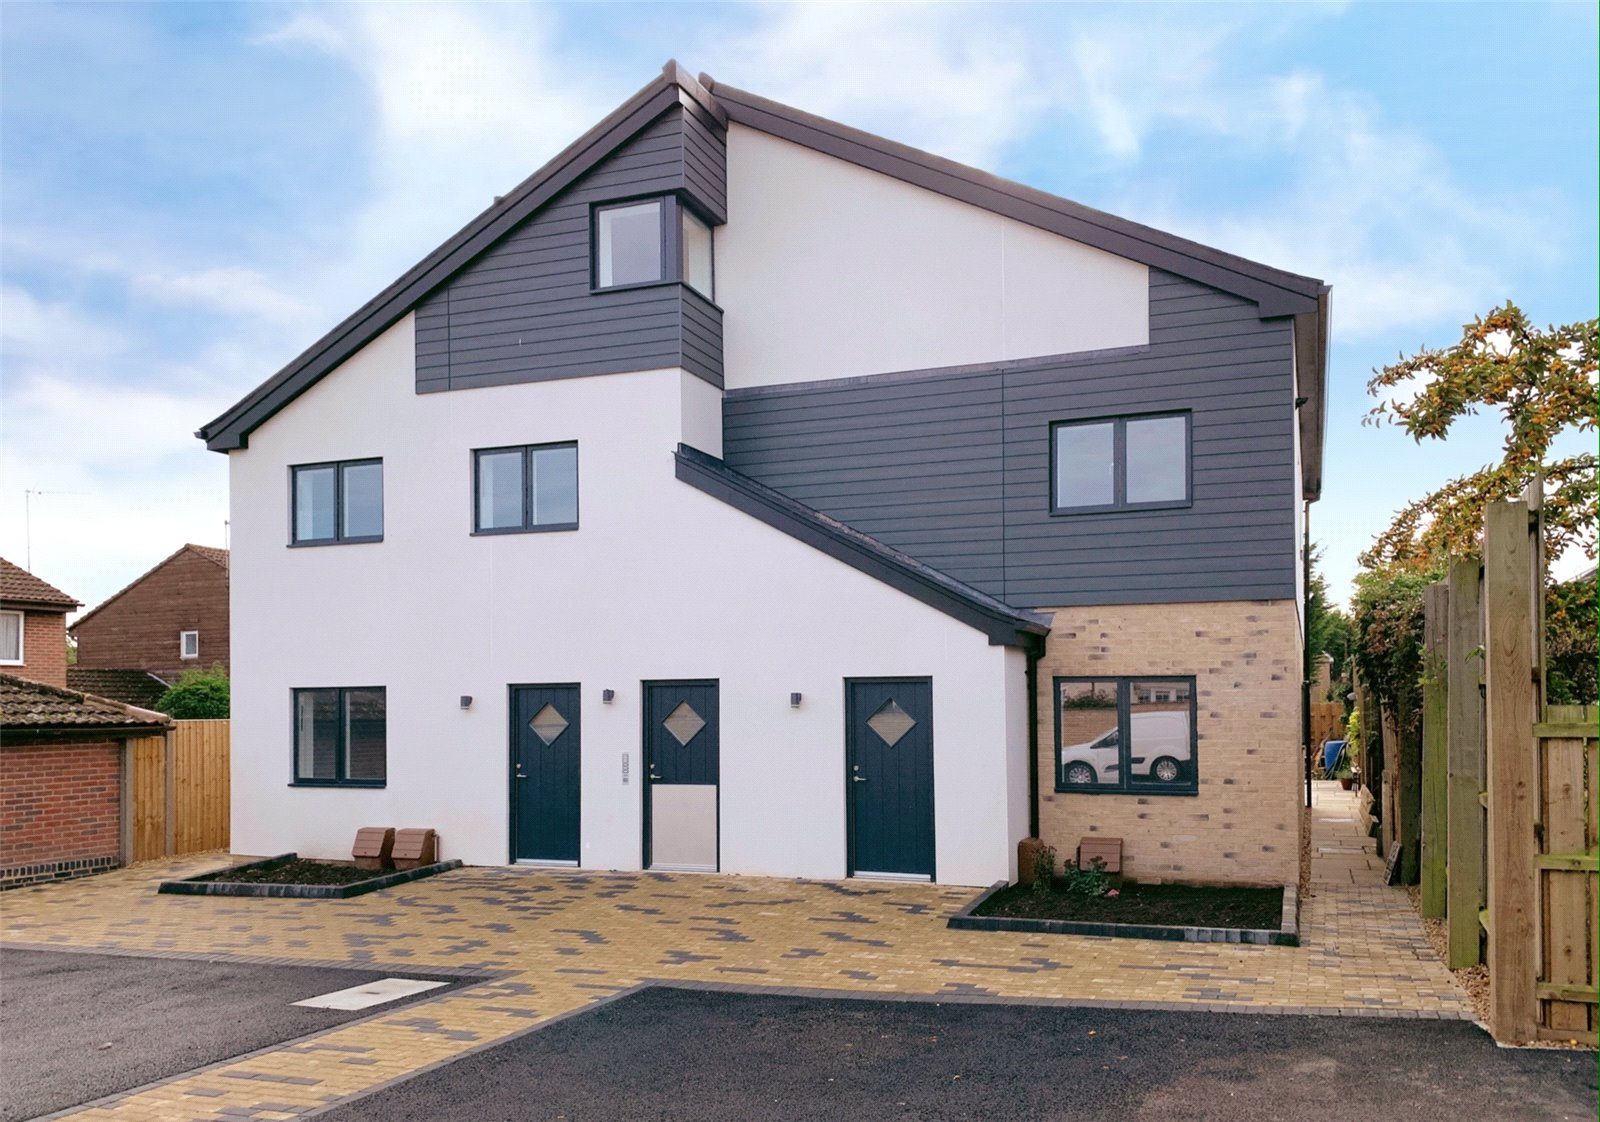 2 bed apartment for sale in Fairfields Drive, PE26 1NQ 0